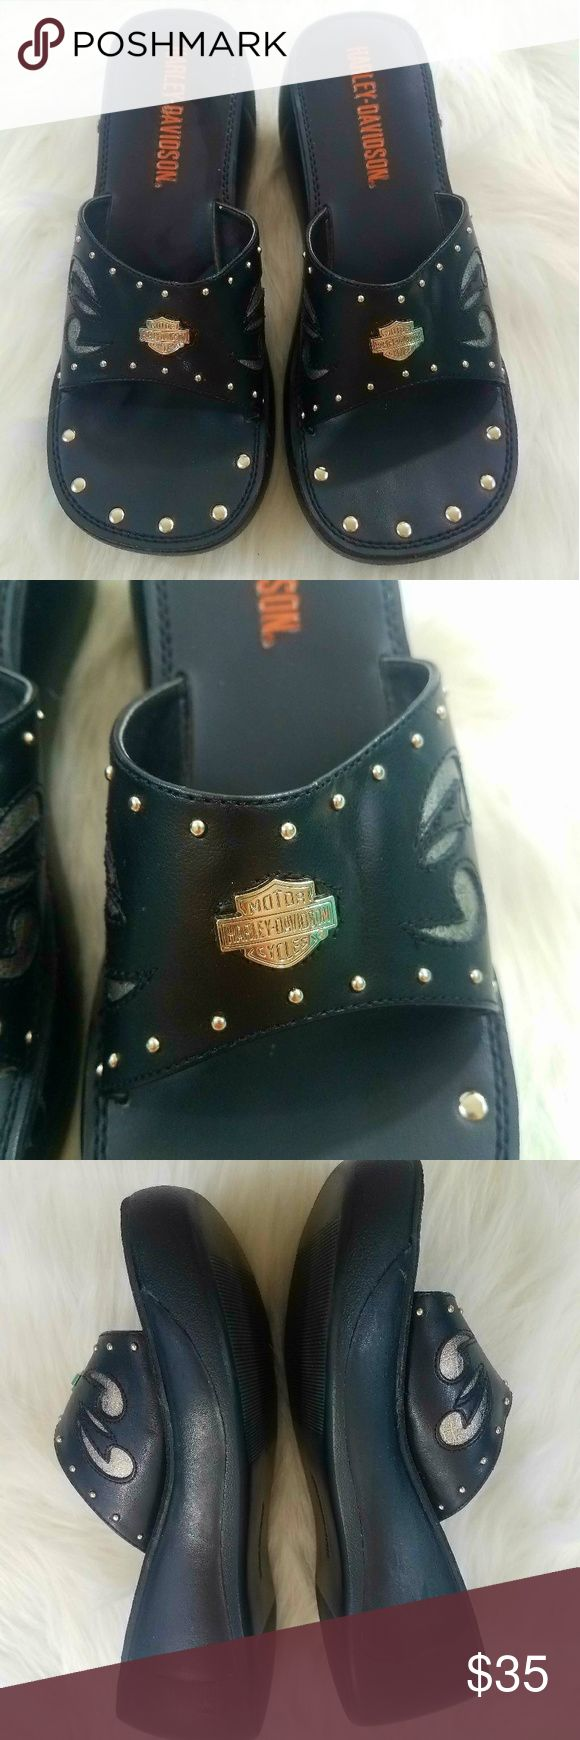 Harley Davidson Slip On Wedge Sandels Harley Davidson Slip On Wedge Sandels Size 8. Very gently used! Worn maybe once! Has some slight wear in the bottom heel. Please See pictures! Harley-Davidson Shoes Sandals